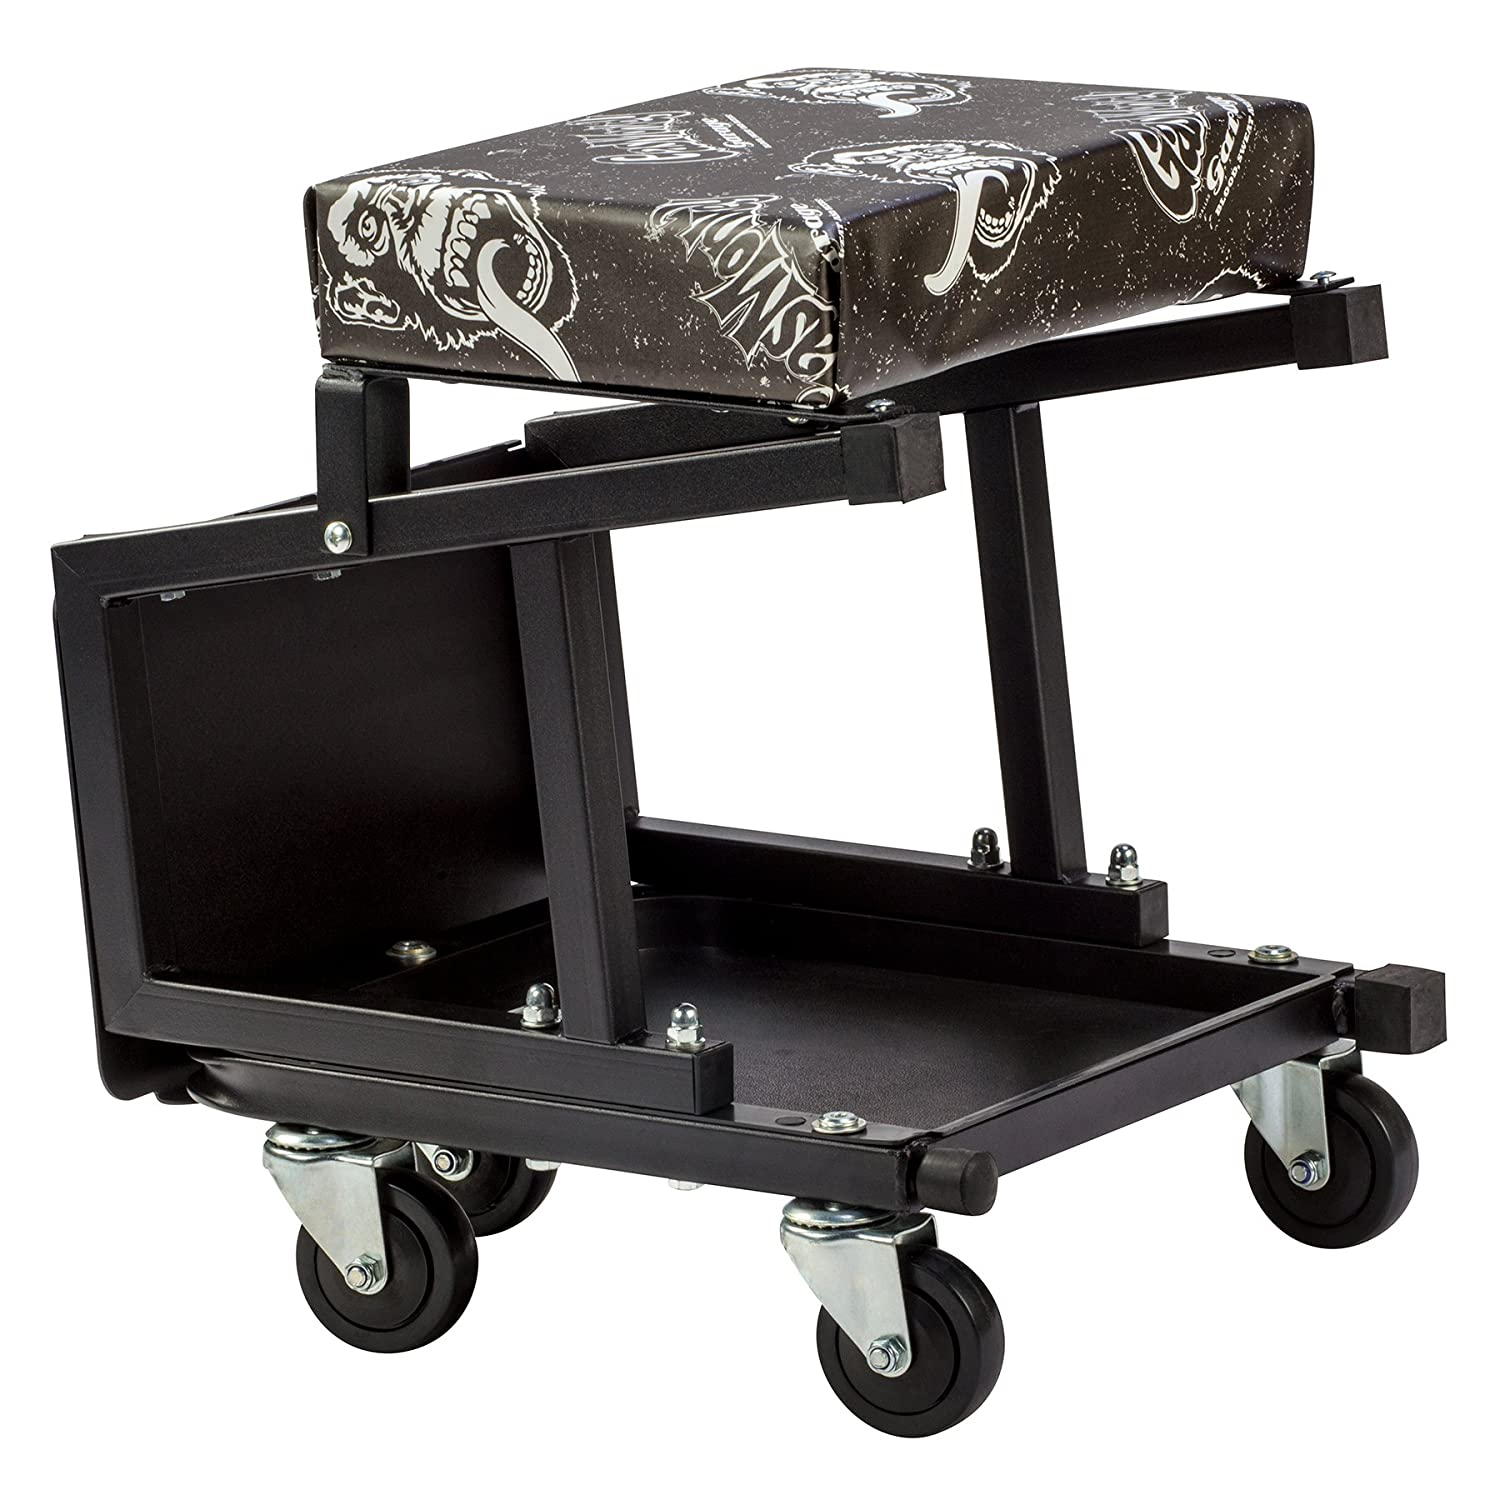 Gas Monkey Mechanic Creeper Seat and Stool Combo - 5 Rolling Casters with 350 Lbs Capacity for Auto Car Garage GMG91305